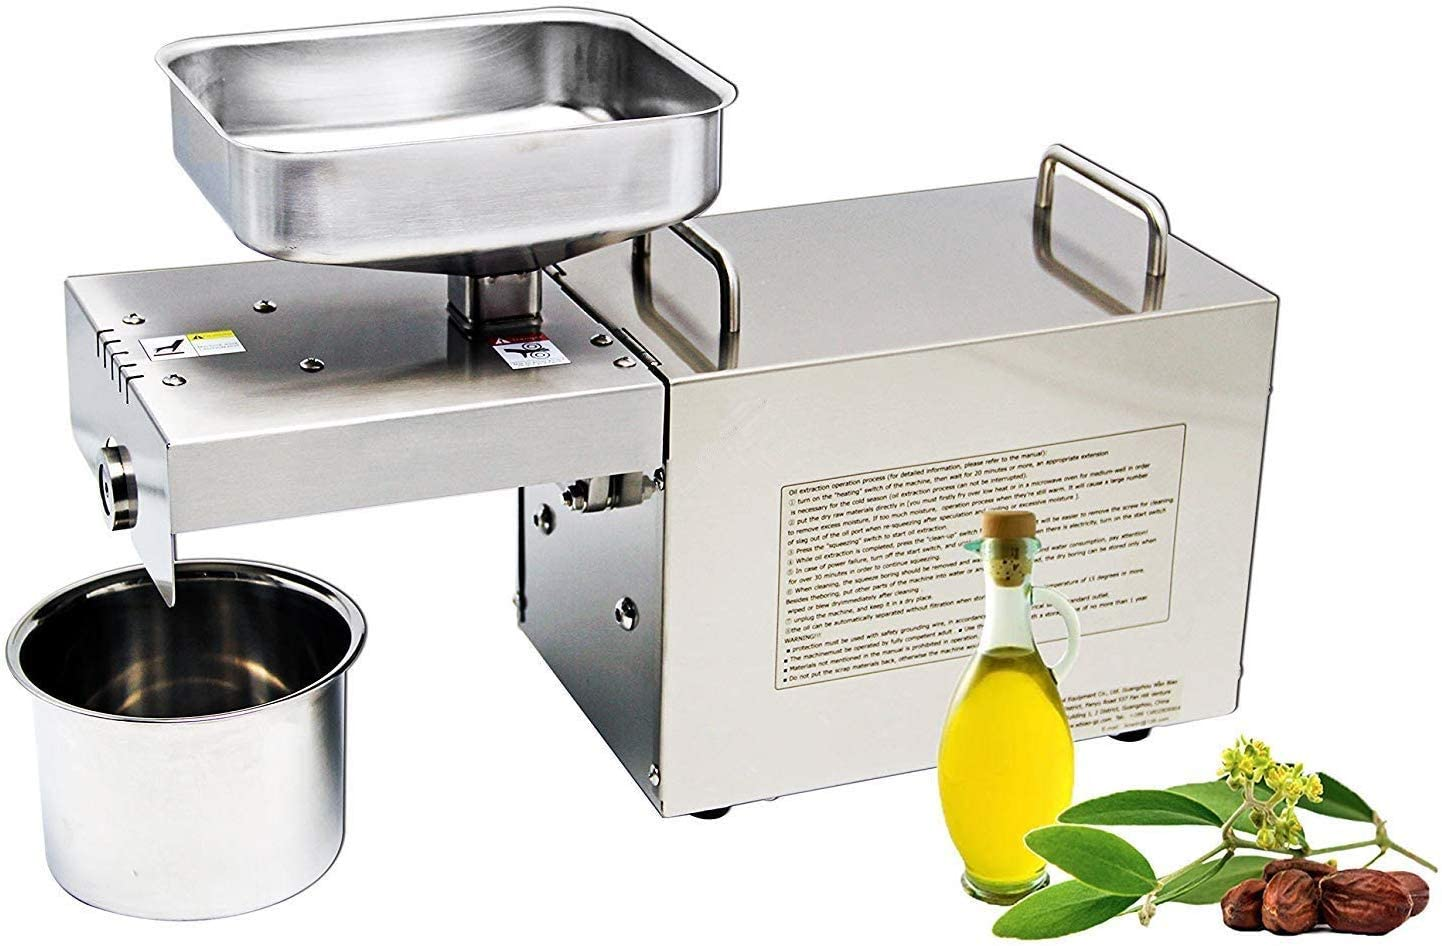 CGOLDENWALL 700W 7-10 kg/h Home Automatic Oil Press Machine Commercial Nuts Seeds Oil Presser Pressing Machine Cold Hot Press All Stainless Steel High Oil Extractor Industrial Motor Heavy Duty